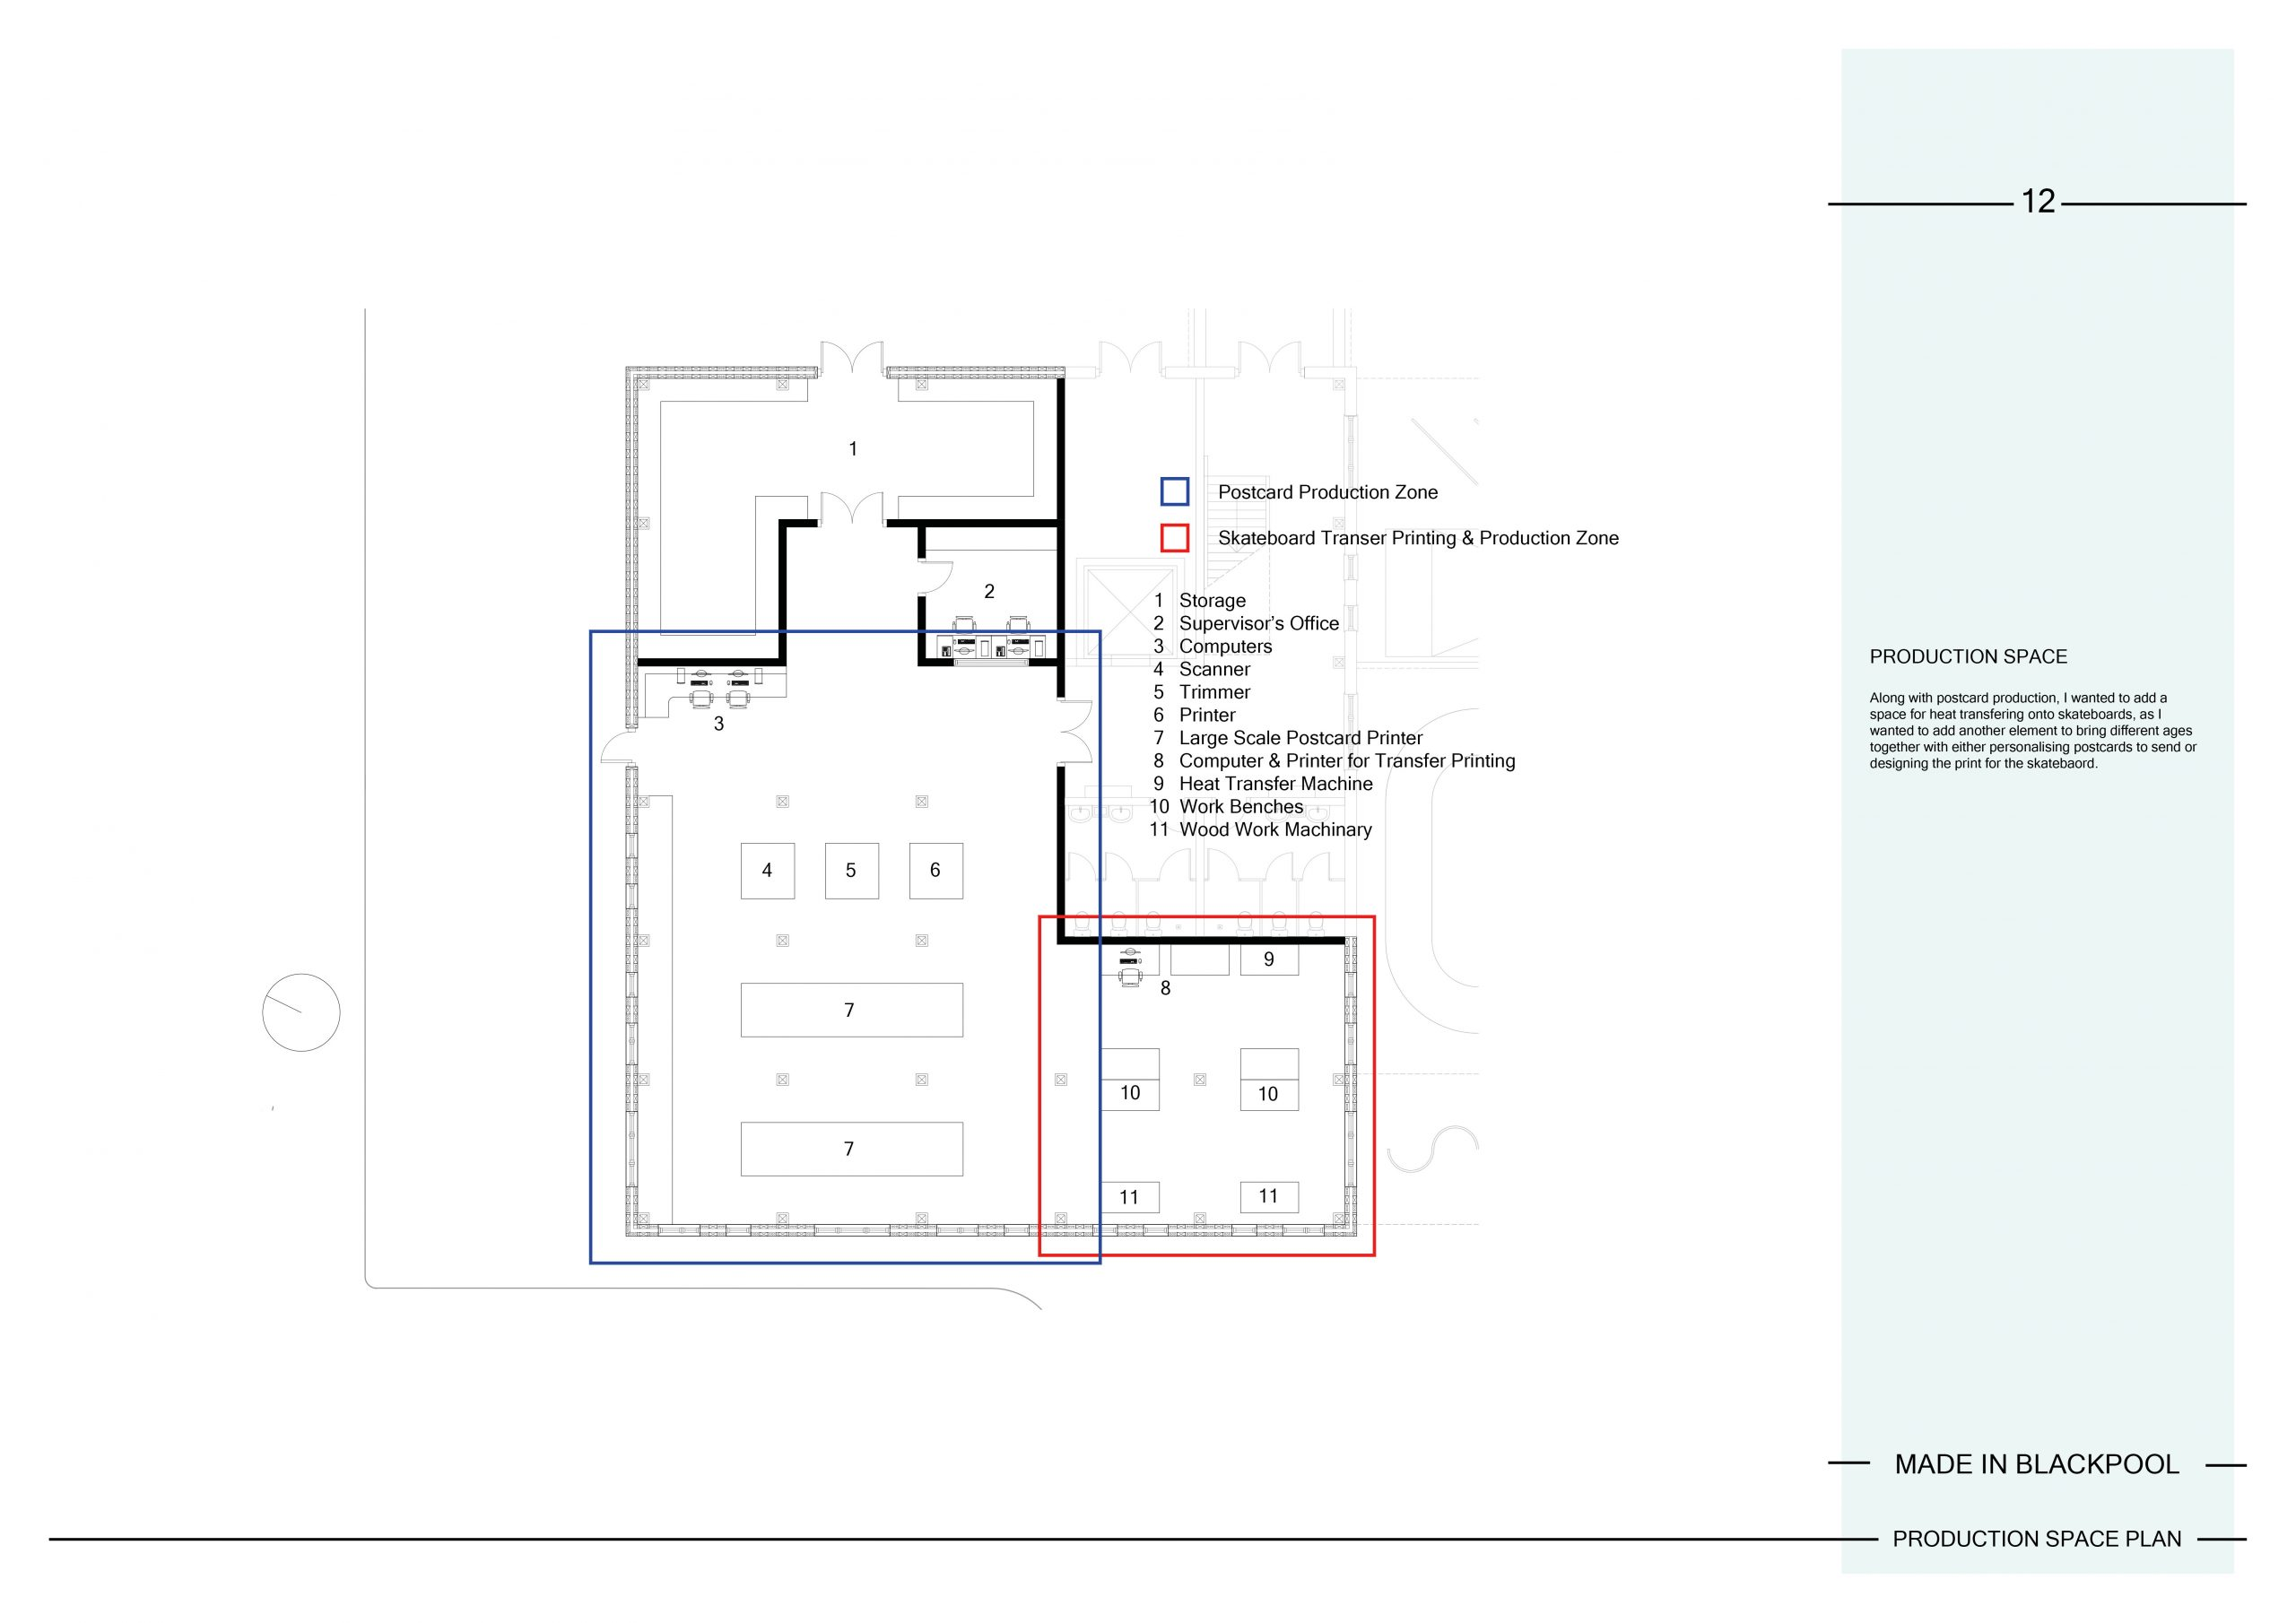 12 Production Space Plan Image